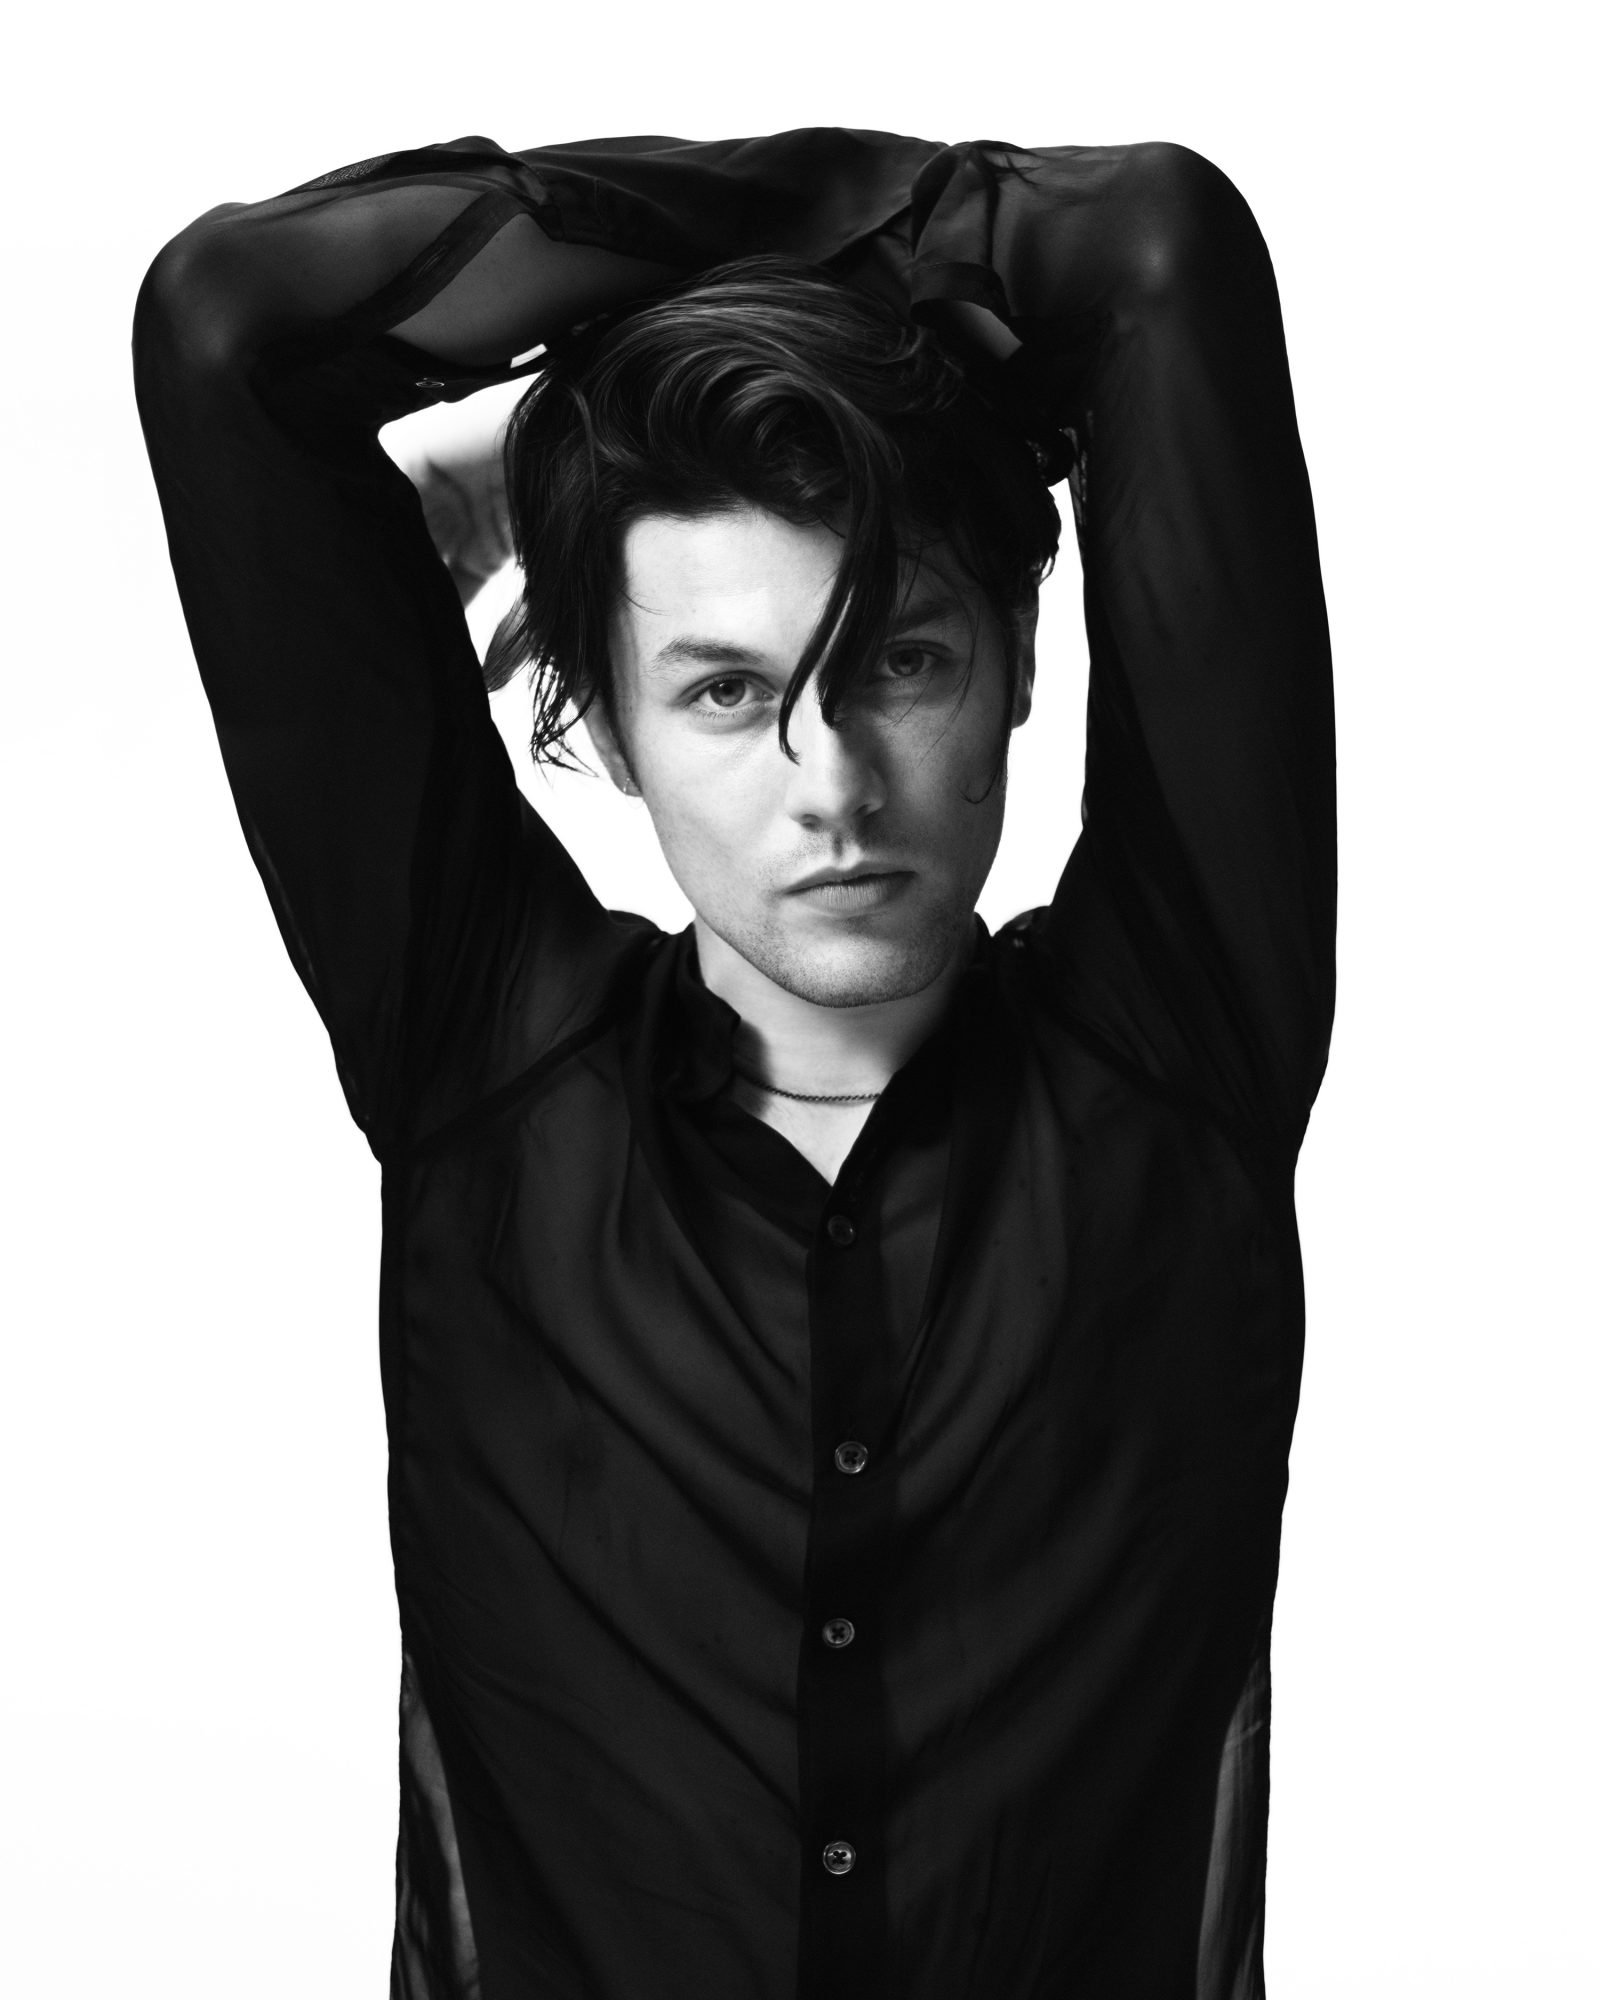 James Bay Press Photo B&W PC Sarah Piantadosi